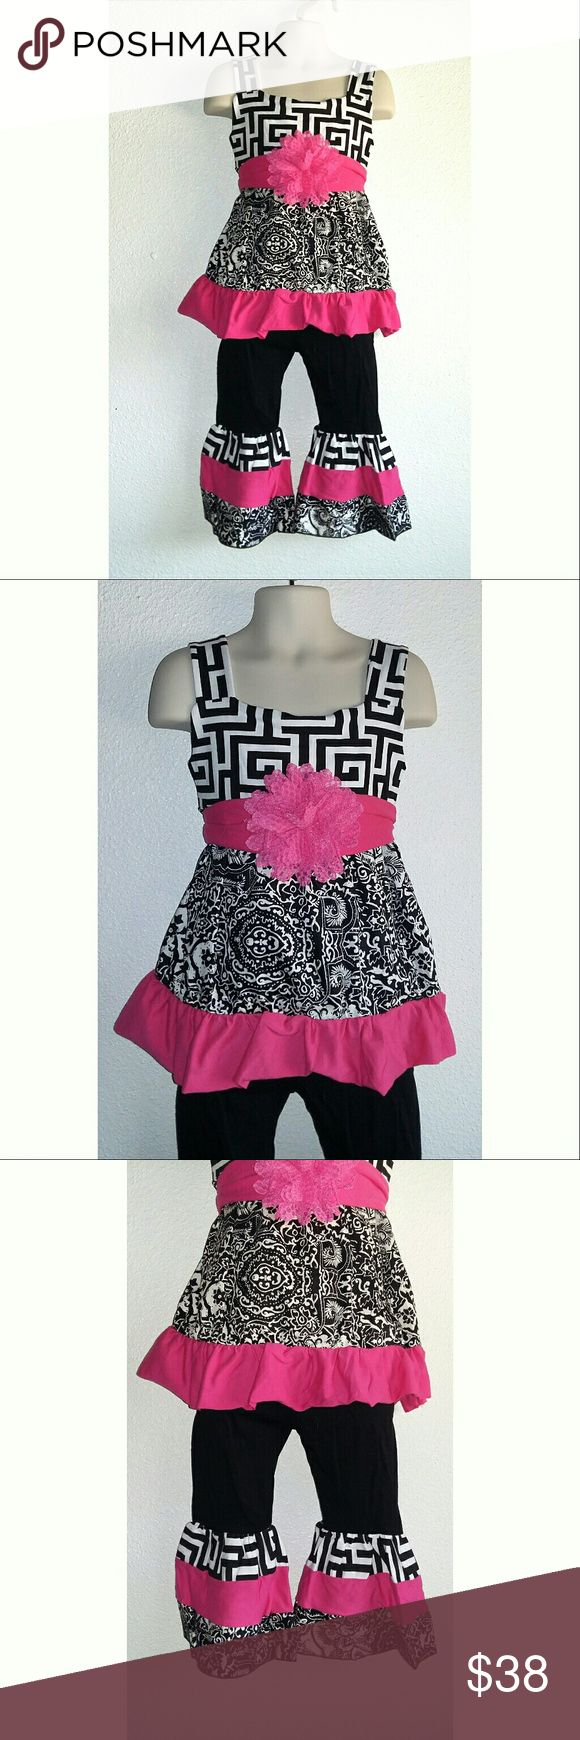 🍉OFFER $30🍉Girl By Design Boutique Outfit Be Bold Be Beautiful and Be Comfortable. Comes with top, pants and belt. Top has beautiful bold design with black and white with a pop of pink. Pants are black with elastic waist and beautiful ruffled pattern bottoms.  Boutique Quality and design. 100% cotton  2T: Pants inseam 16in-17, shirt 15in long 3T: Pants inseam 17in-18, shirt 16in long  4T: Pants inseam 18in-19, shirt 17in long 5T: Pants inseam 19in-20, shirt 18in long 6T: Pants inseam…